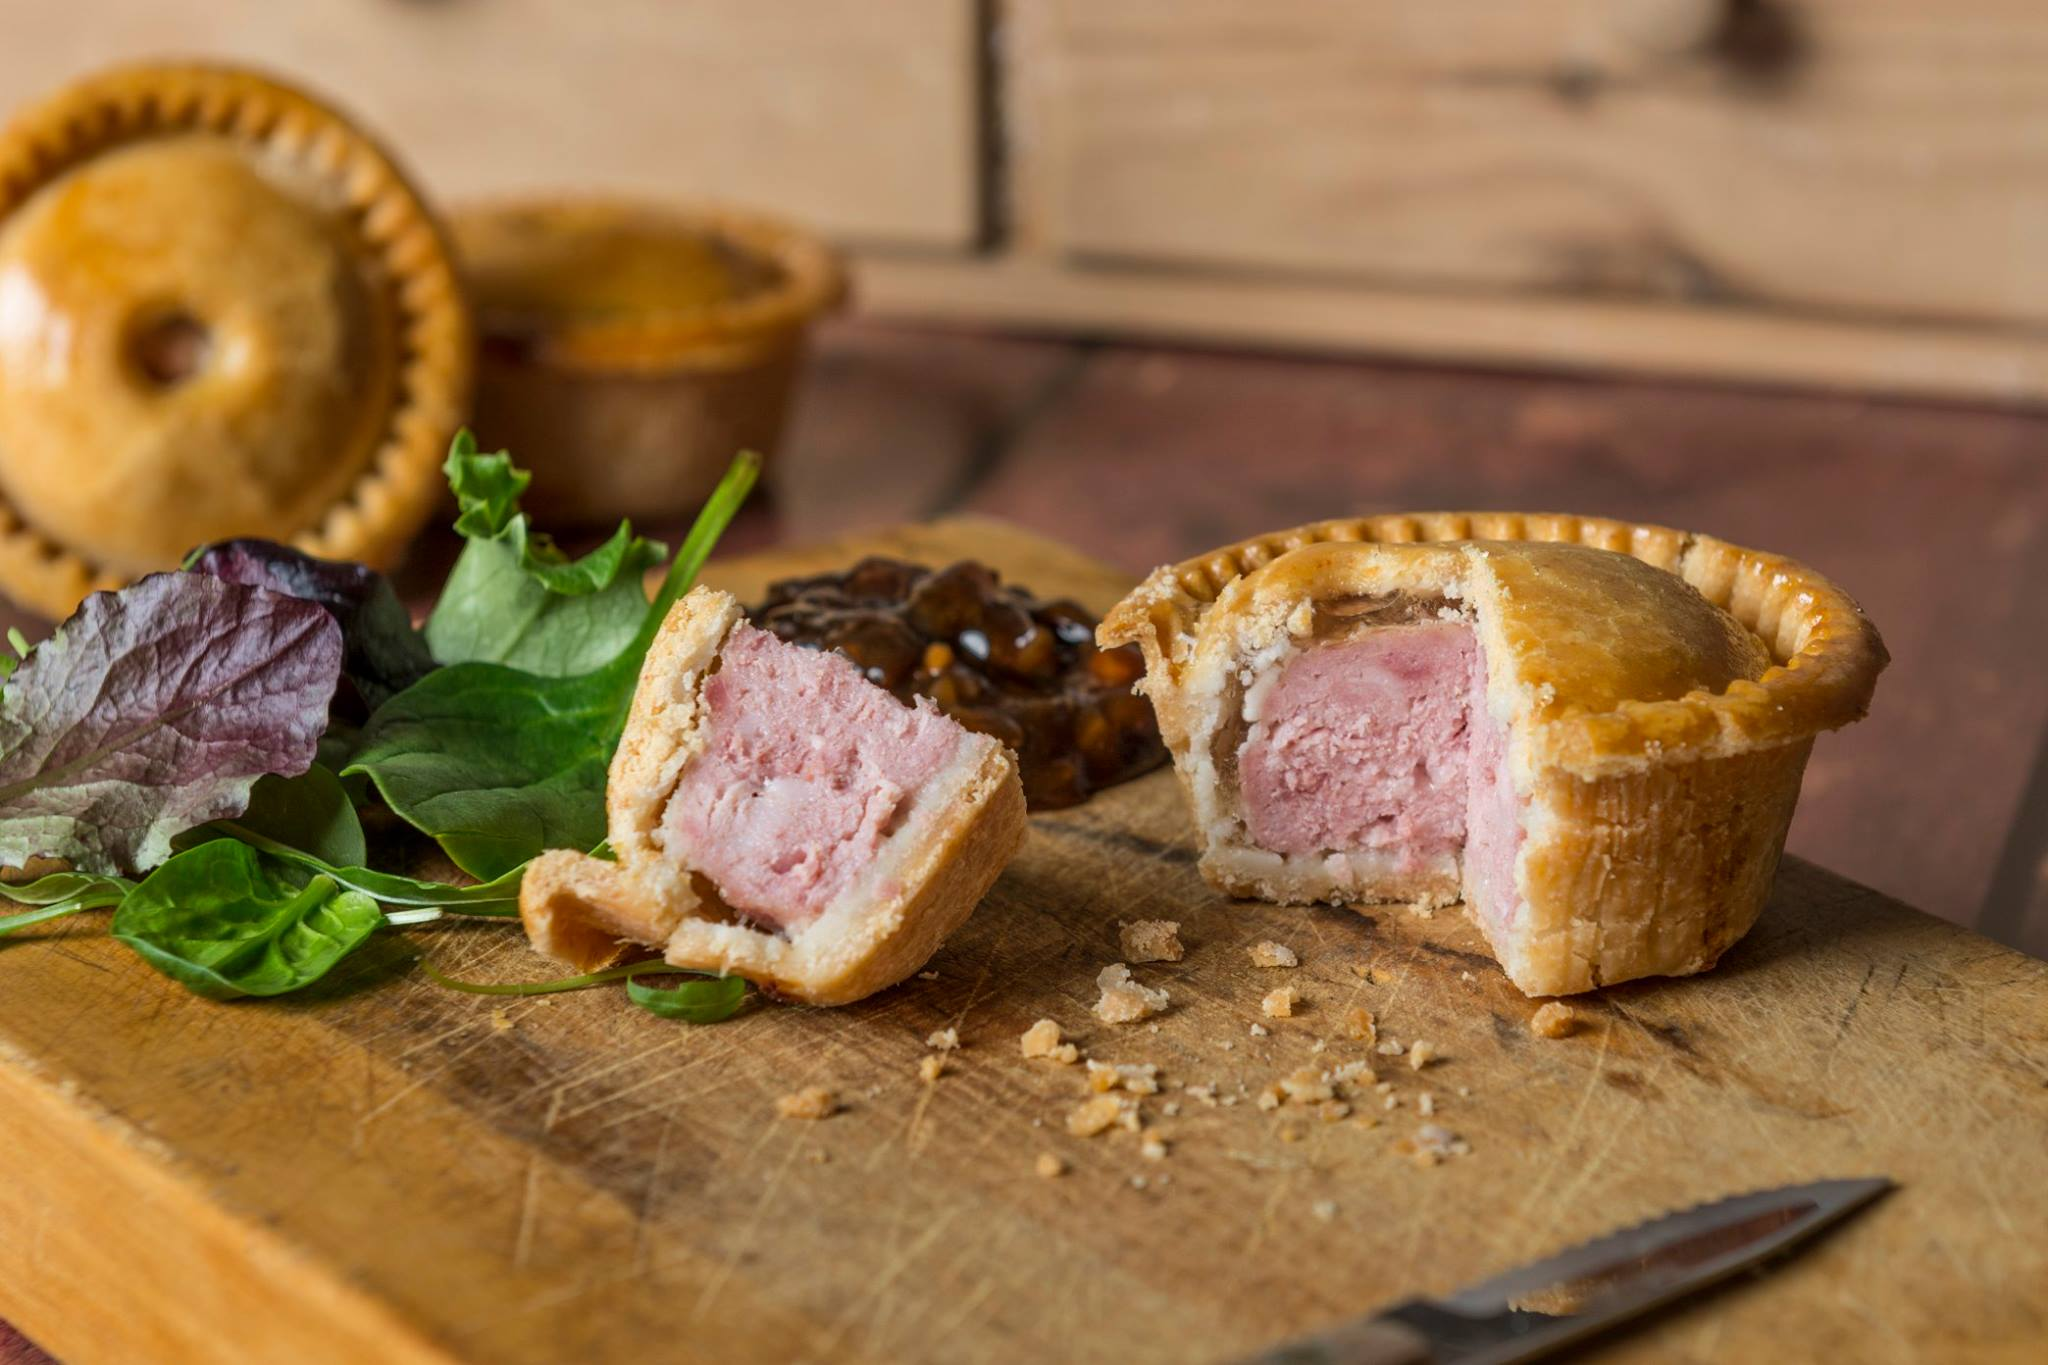 This is a photo of Voakes Pork Pies